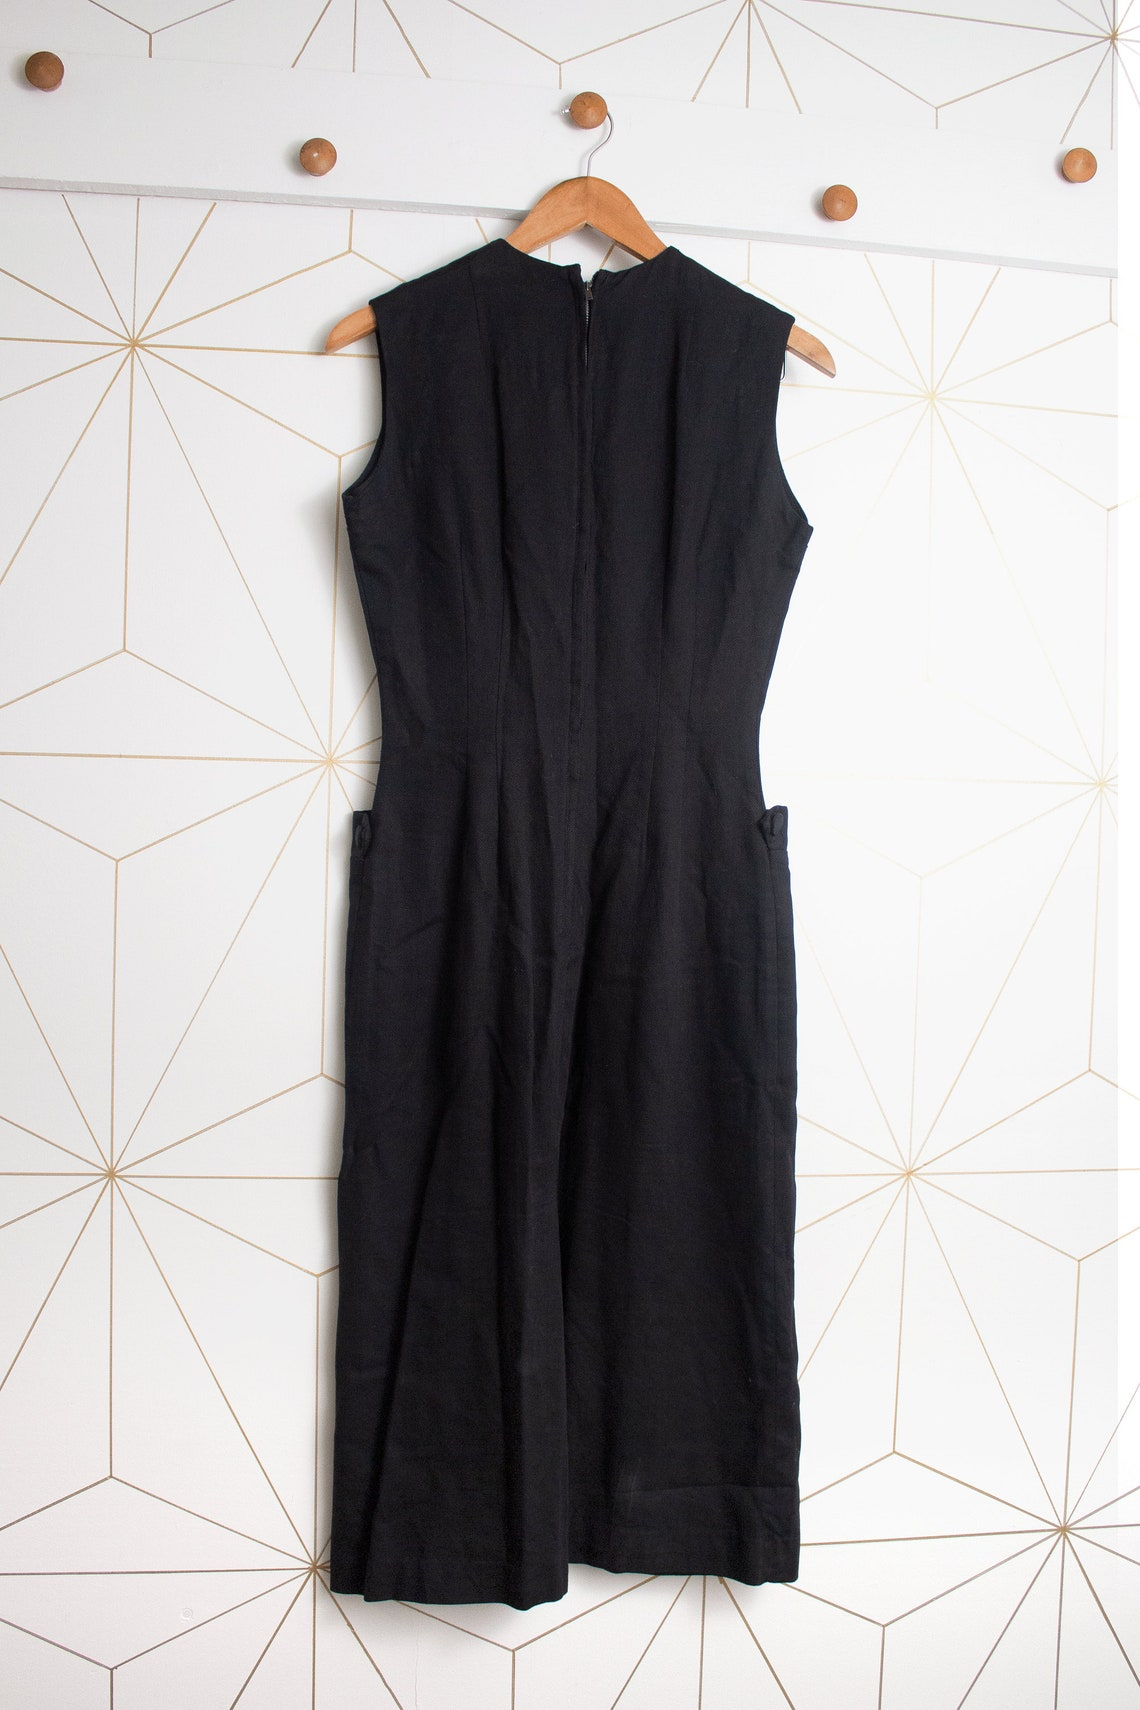 1950s Black Sheath Dress with Pockets  Size Small  All